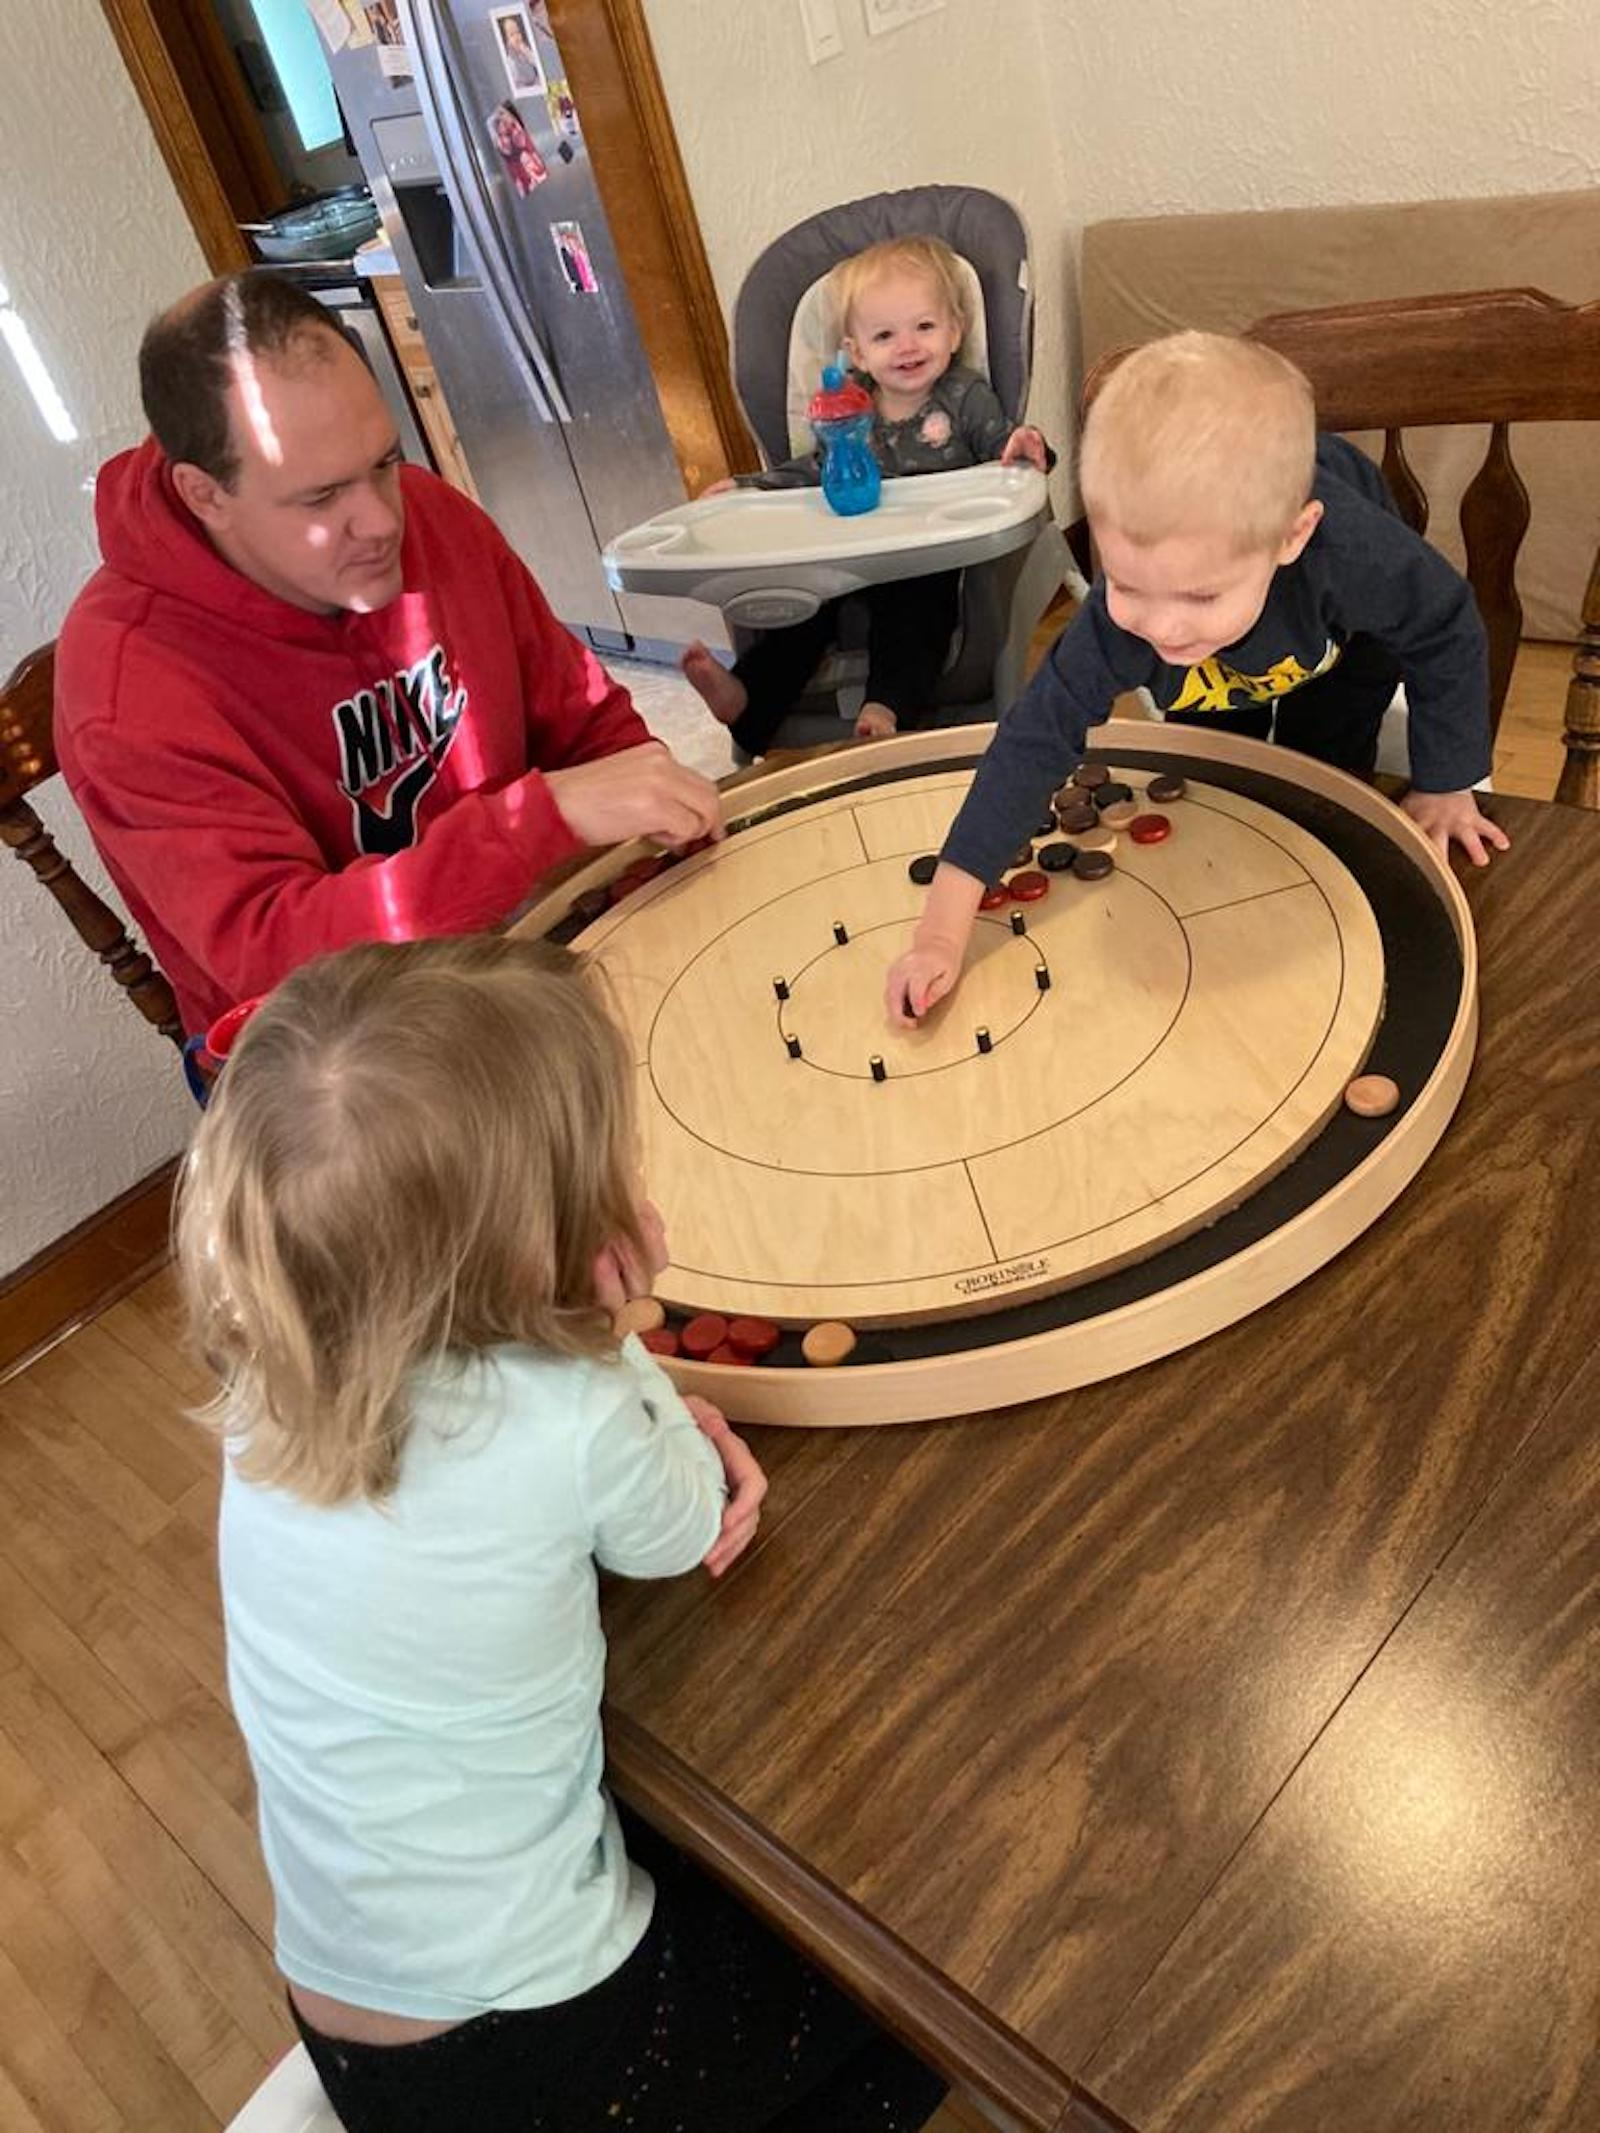 Testimonial Image from Happy Customer for Crokinole Game Boards